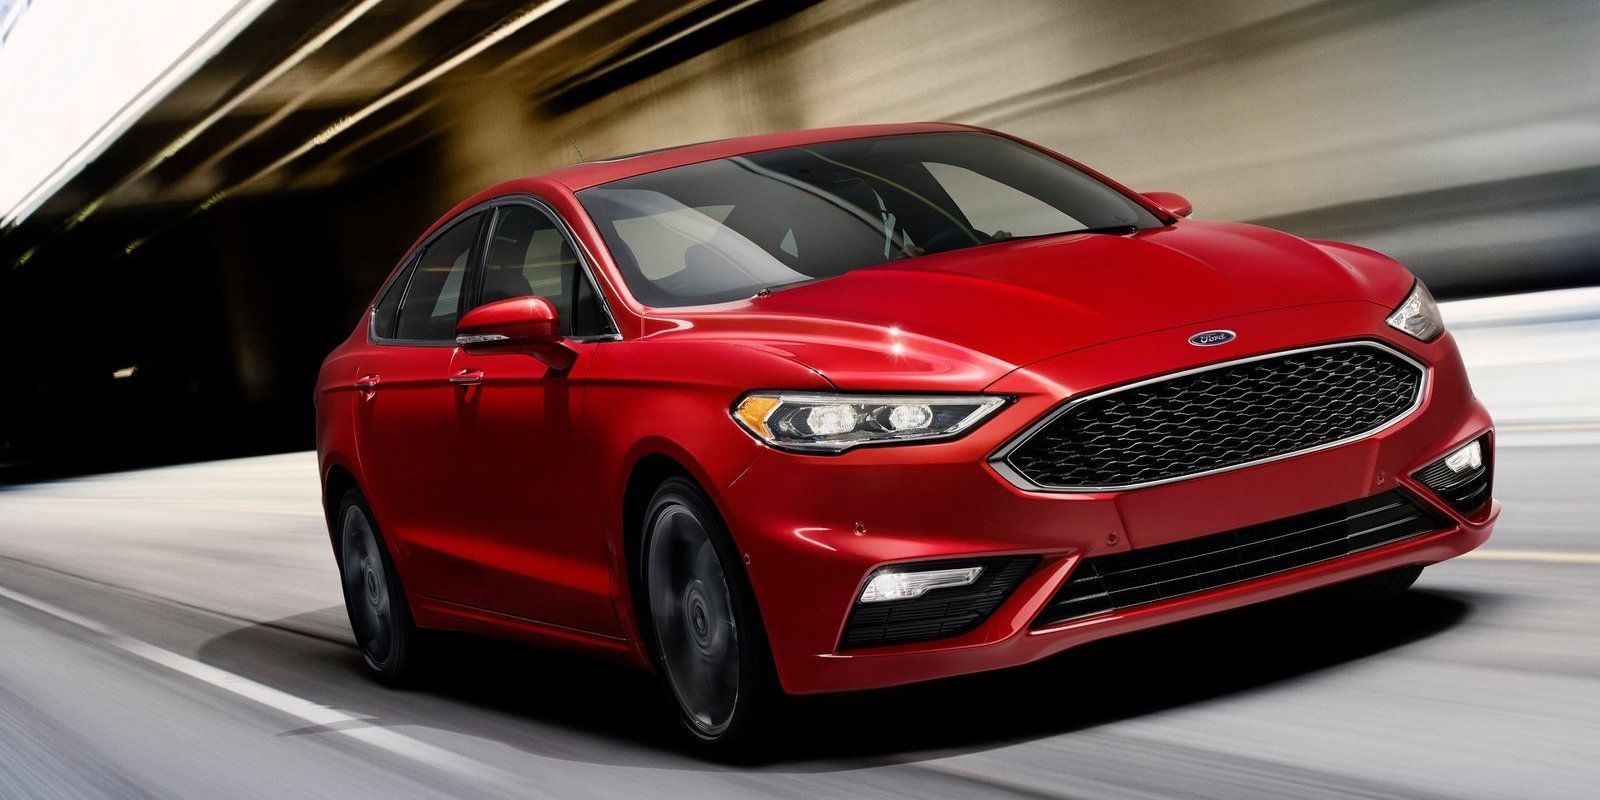 Ford ford fusion v6 : The Ford Fusion V6 Sport Packs 325-hp and All-Wheel Drive